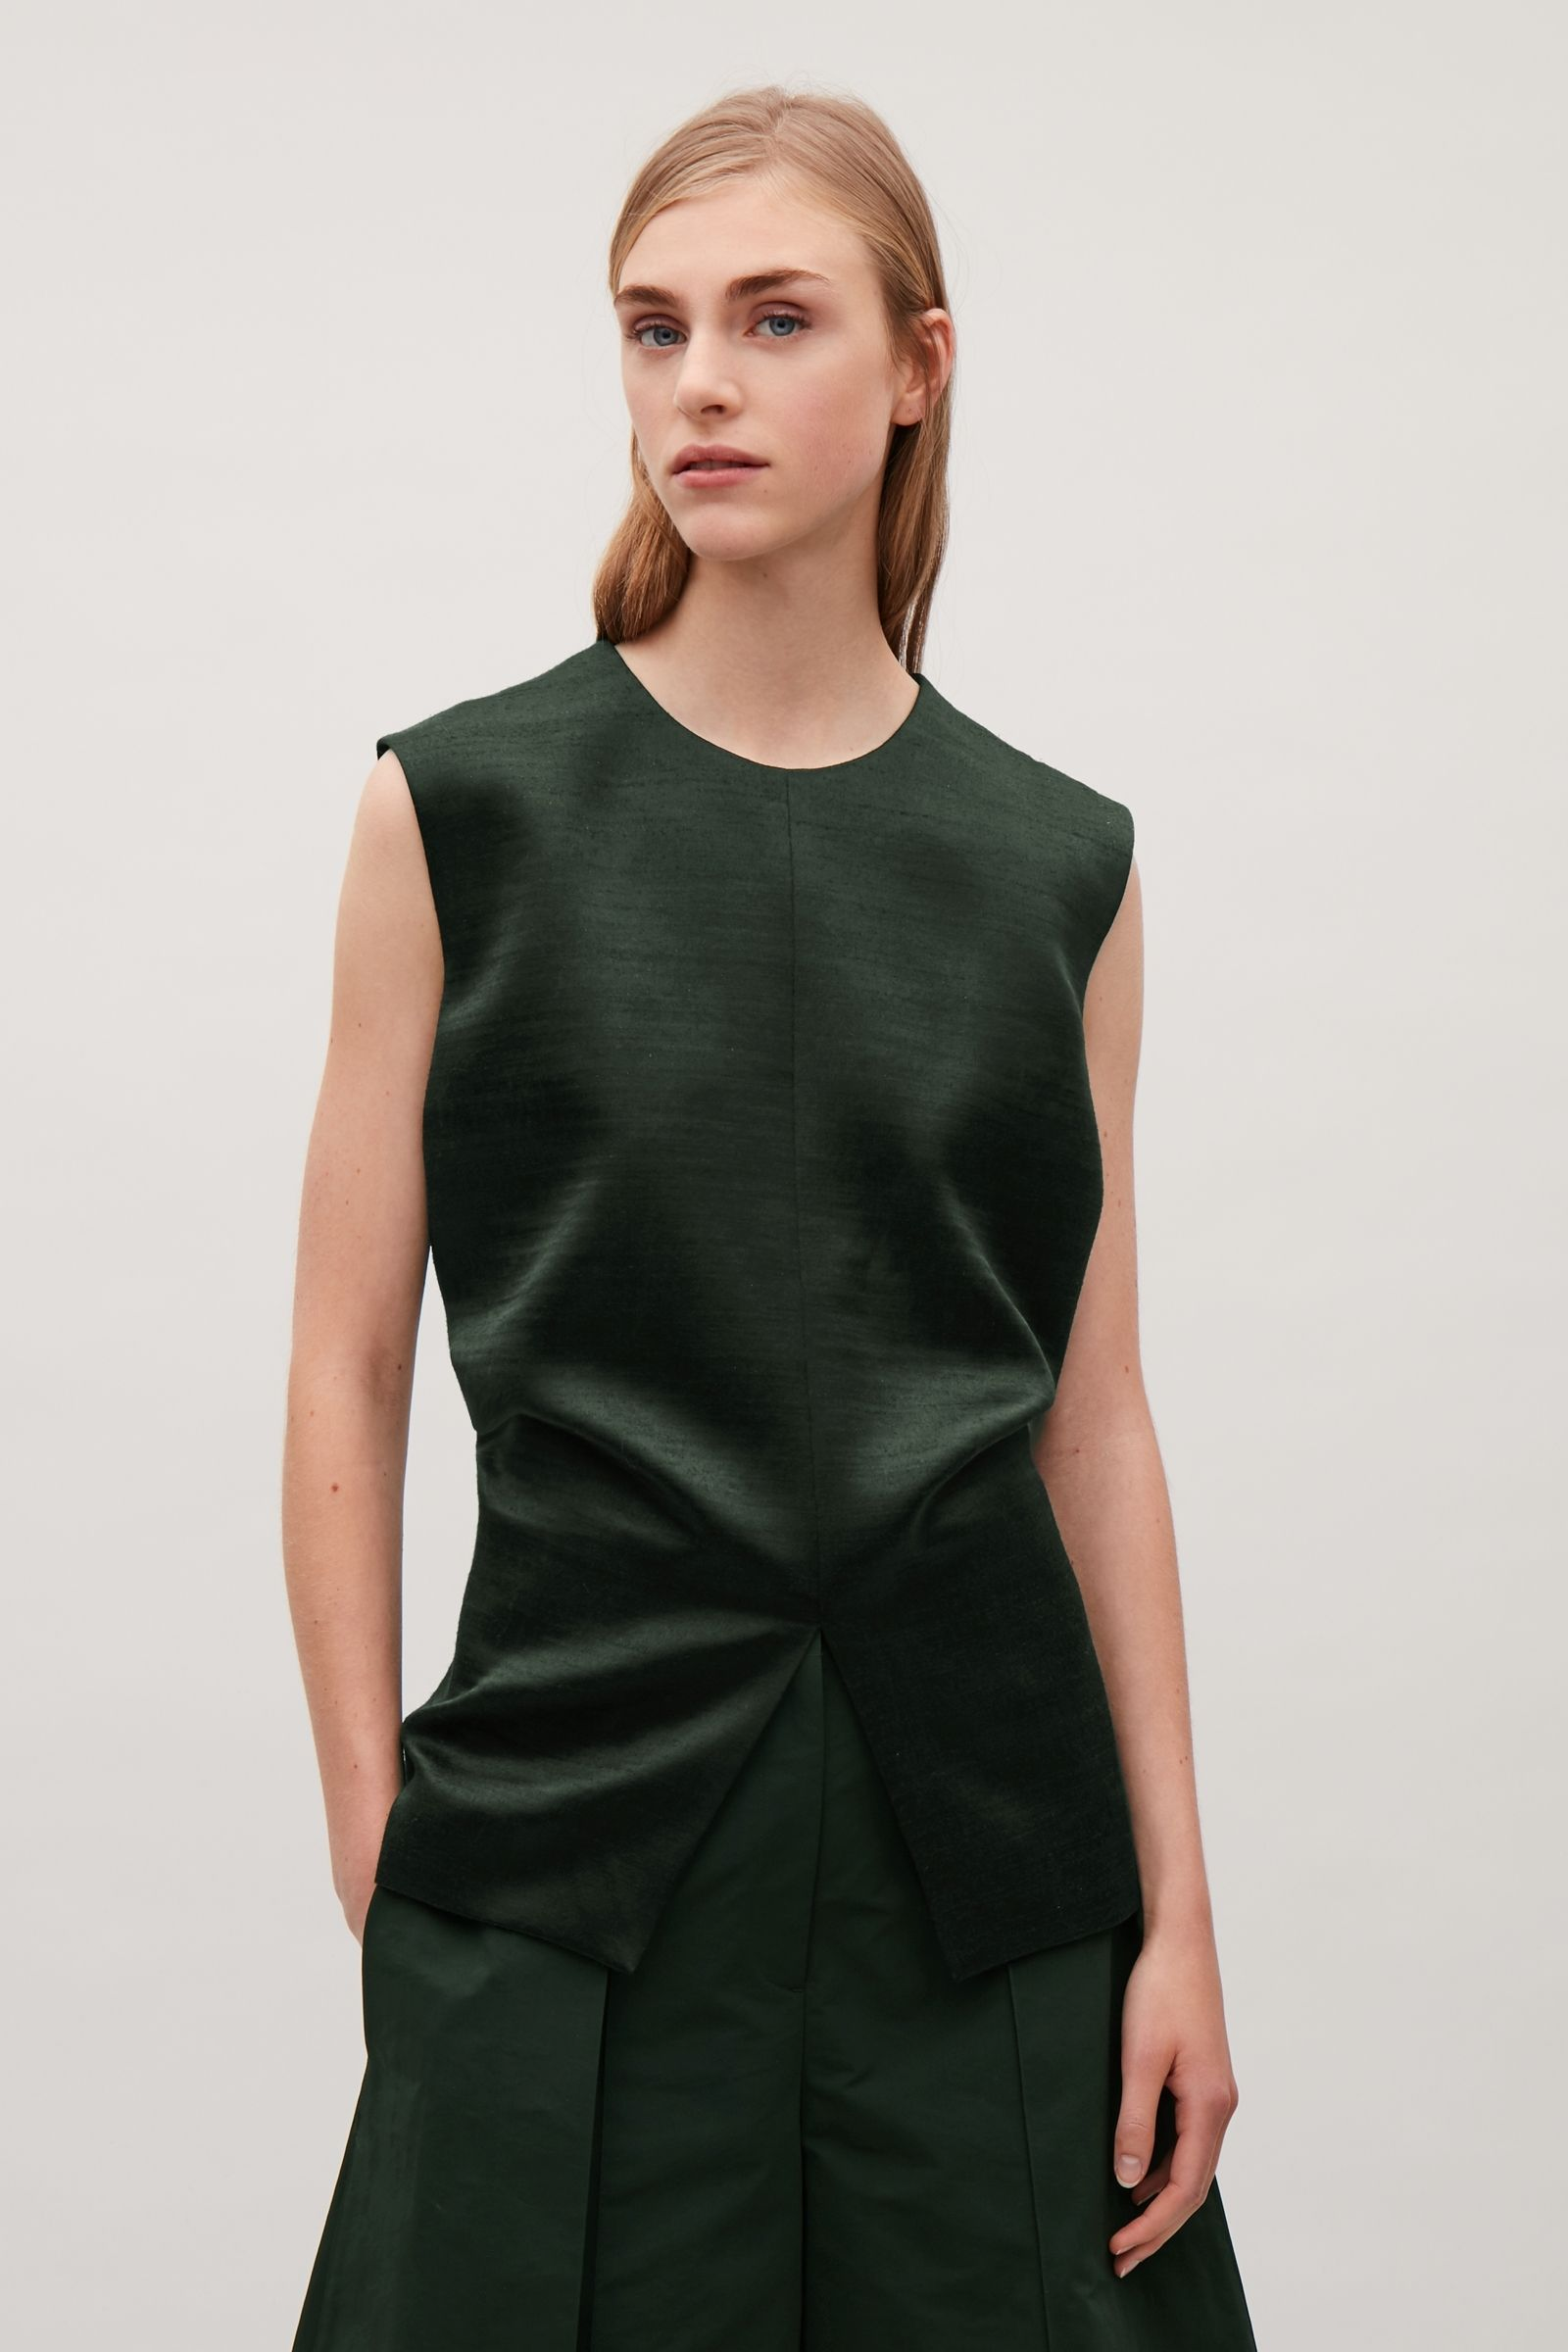 796a90a4f2830 COS image 6 of Sleeveless side-drape top in Dark green | Blouses ...